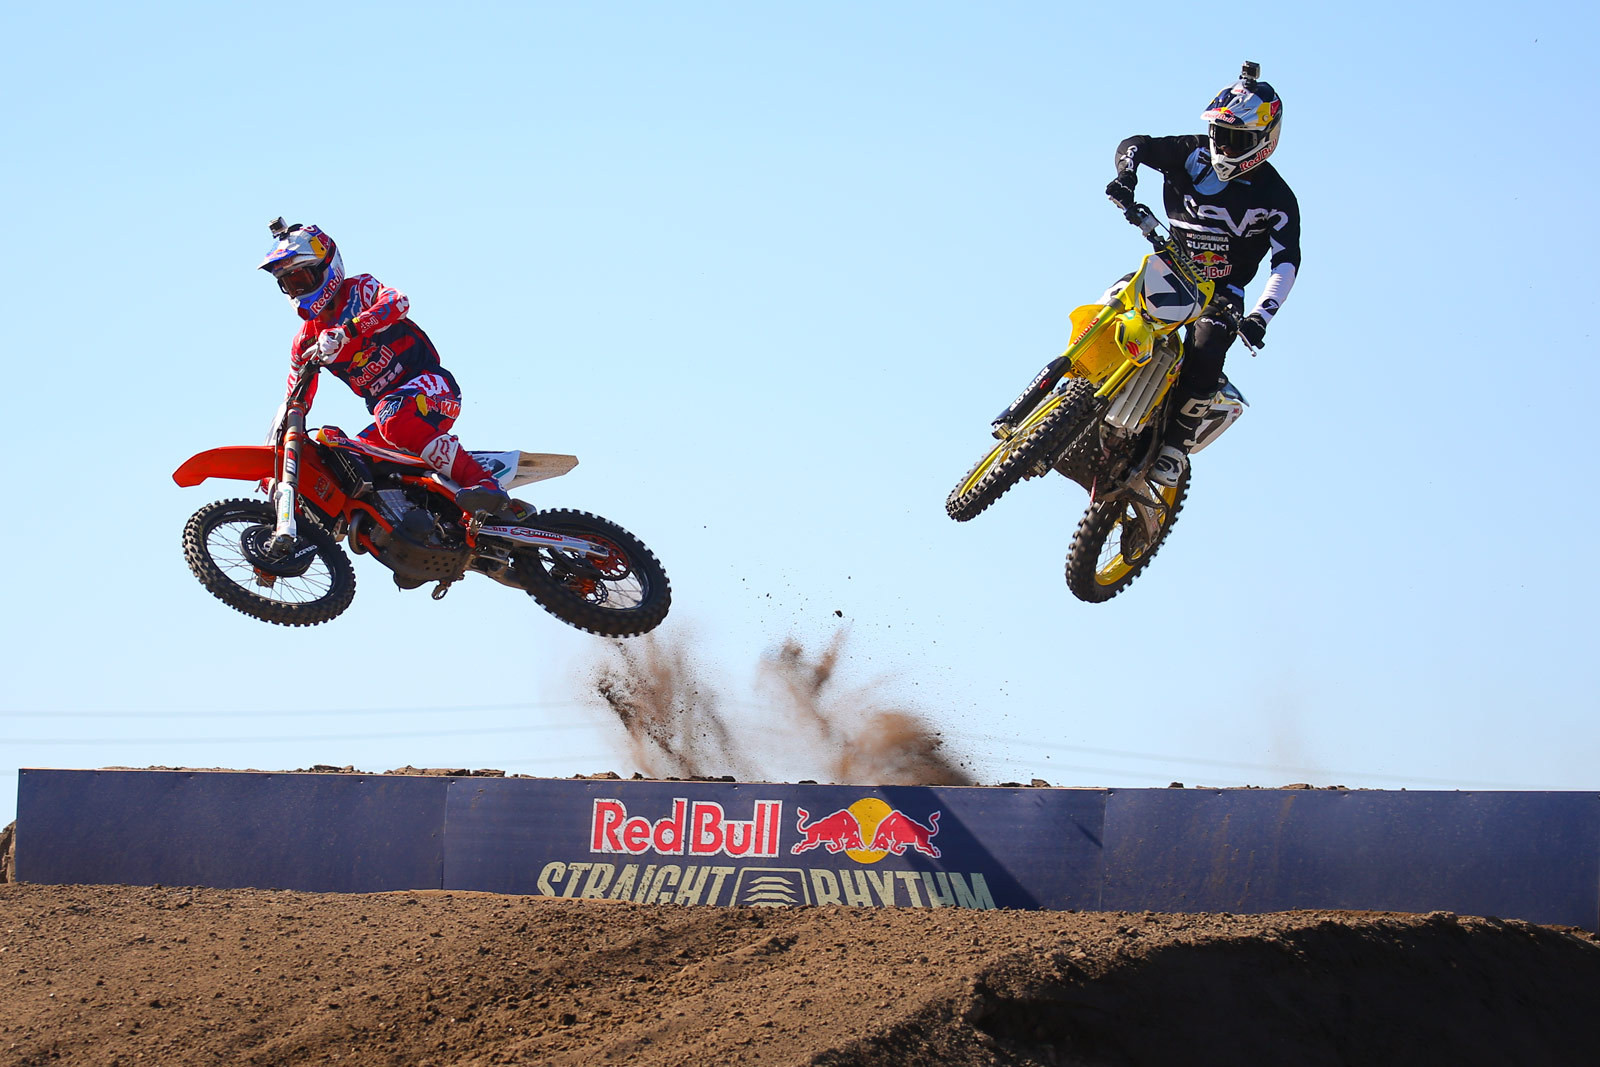 Ryan Dungey and James Stewart - Photo Blast: Red Bull Straight Rhythm - Motocross Pictures - Vital MX